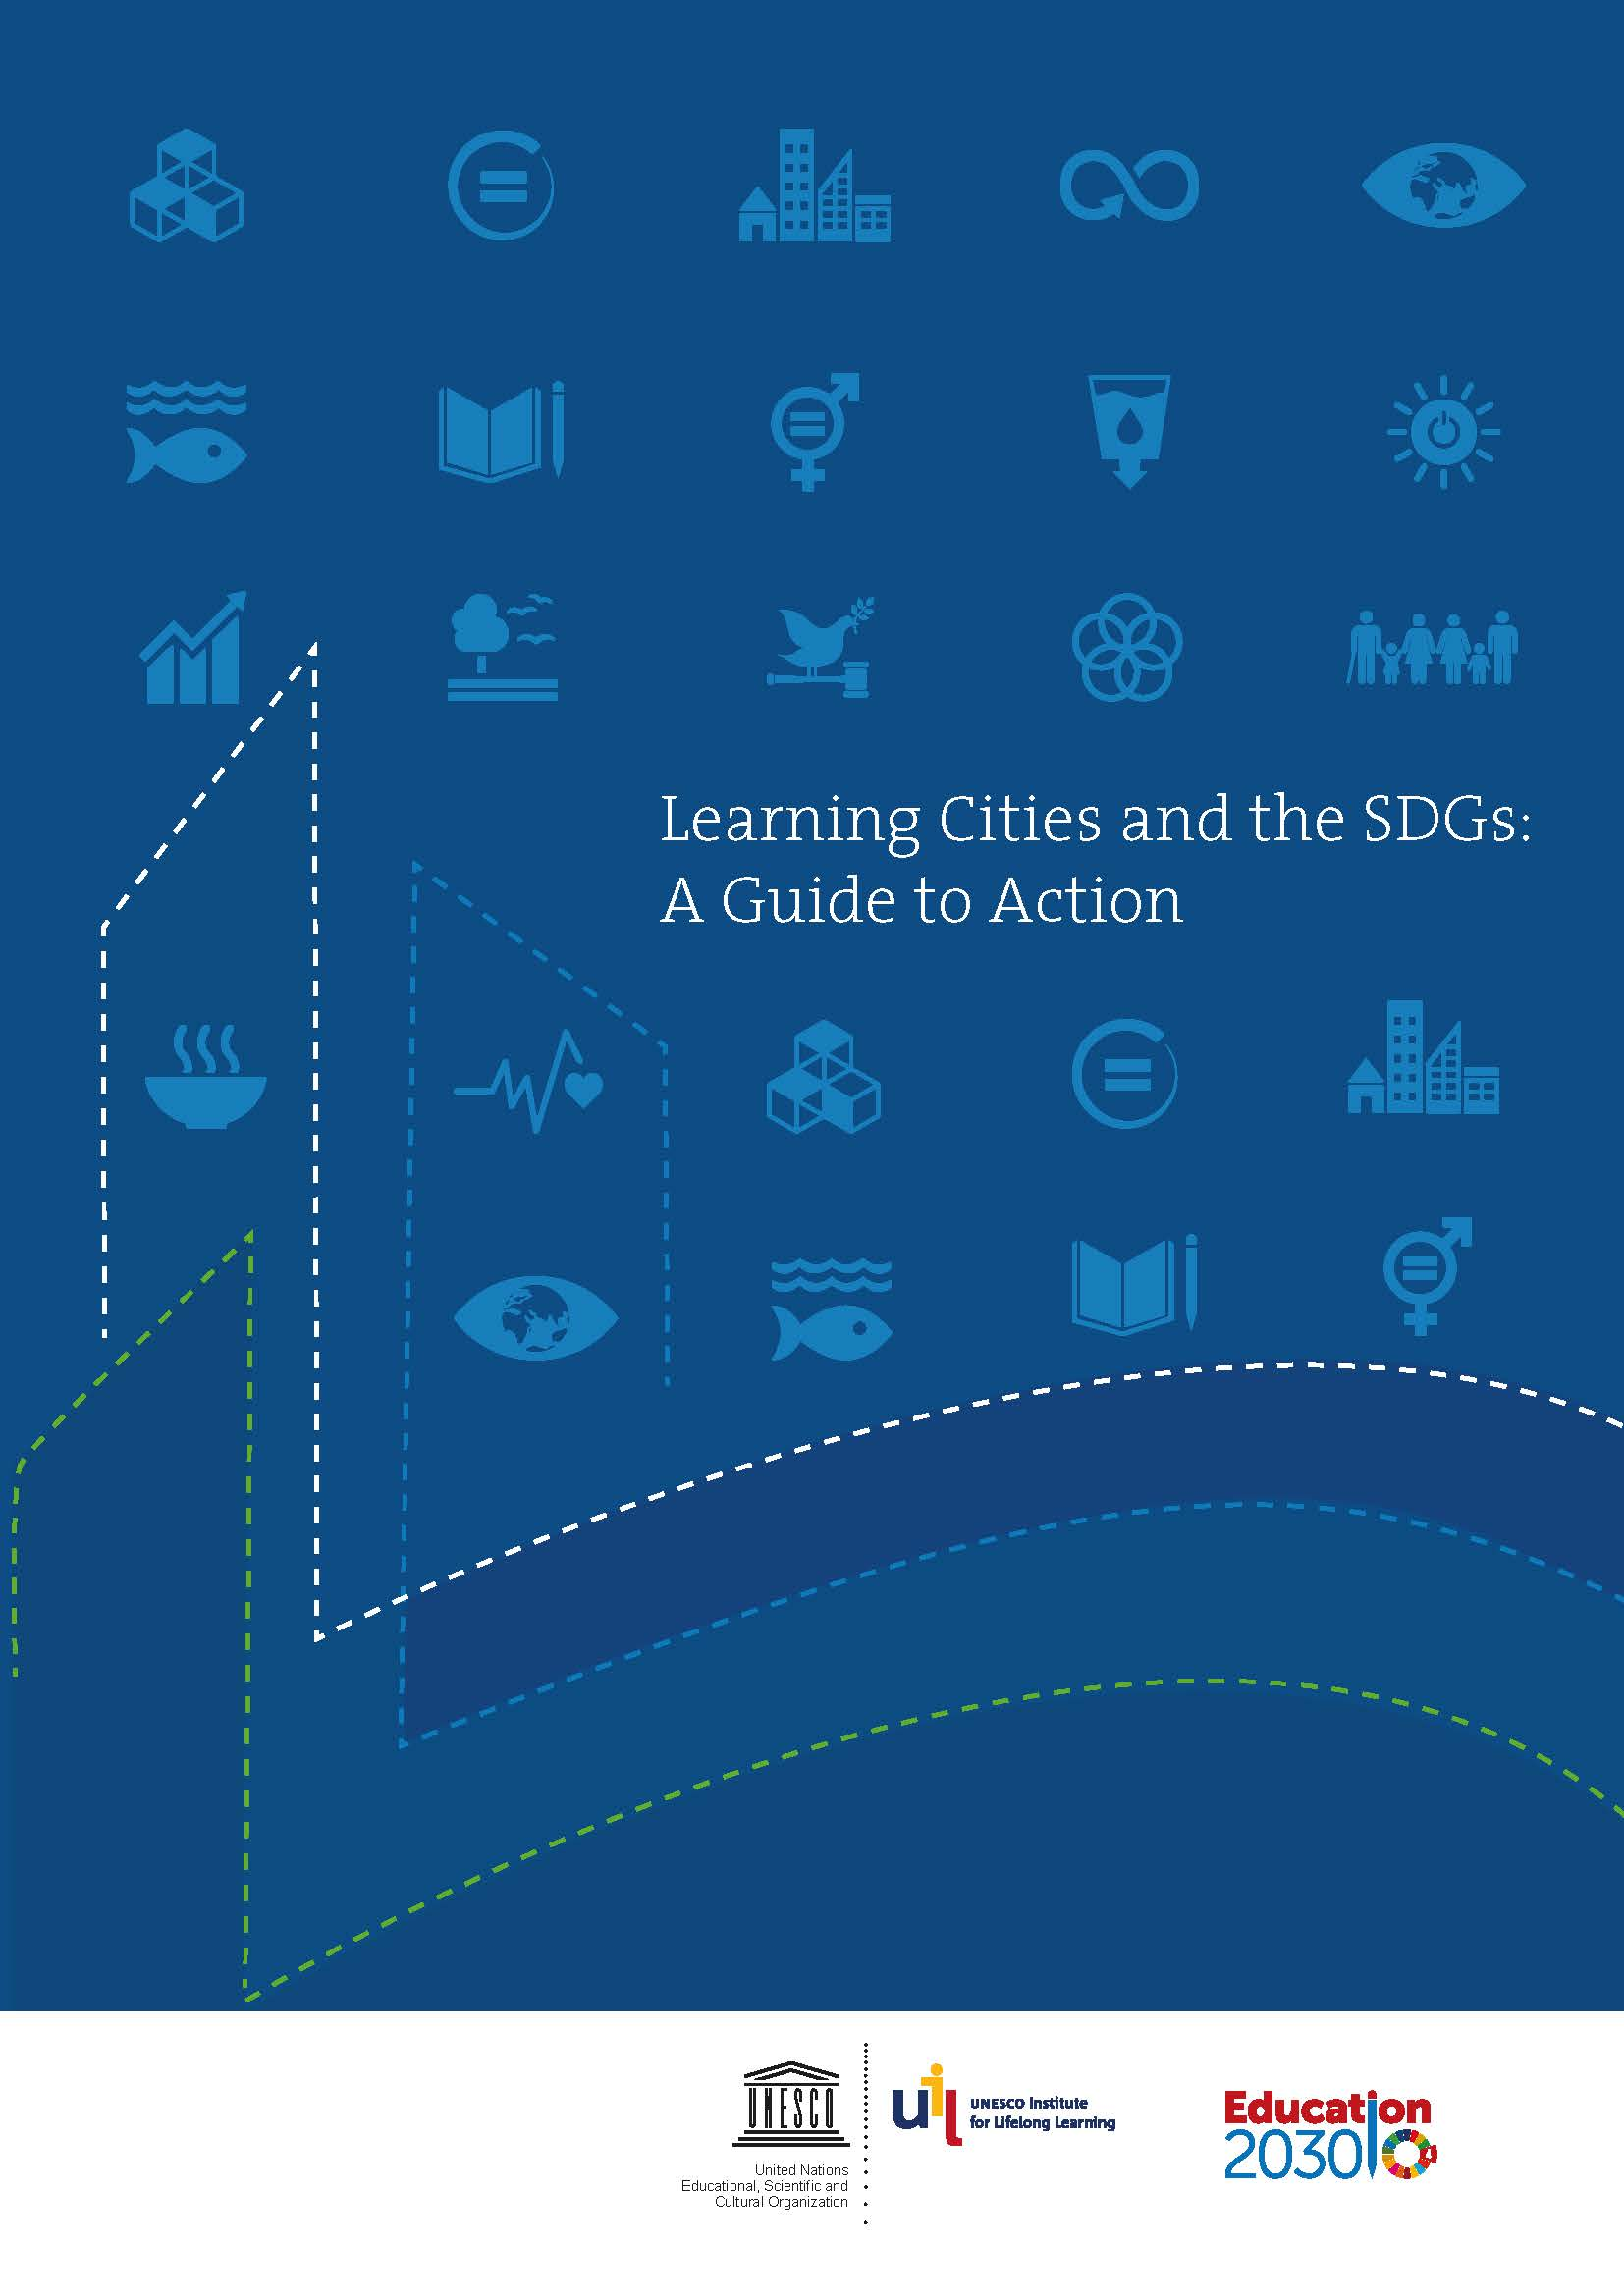 Learning Cities and the SDGs: A Guide to Action